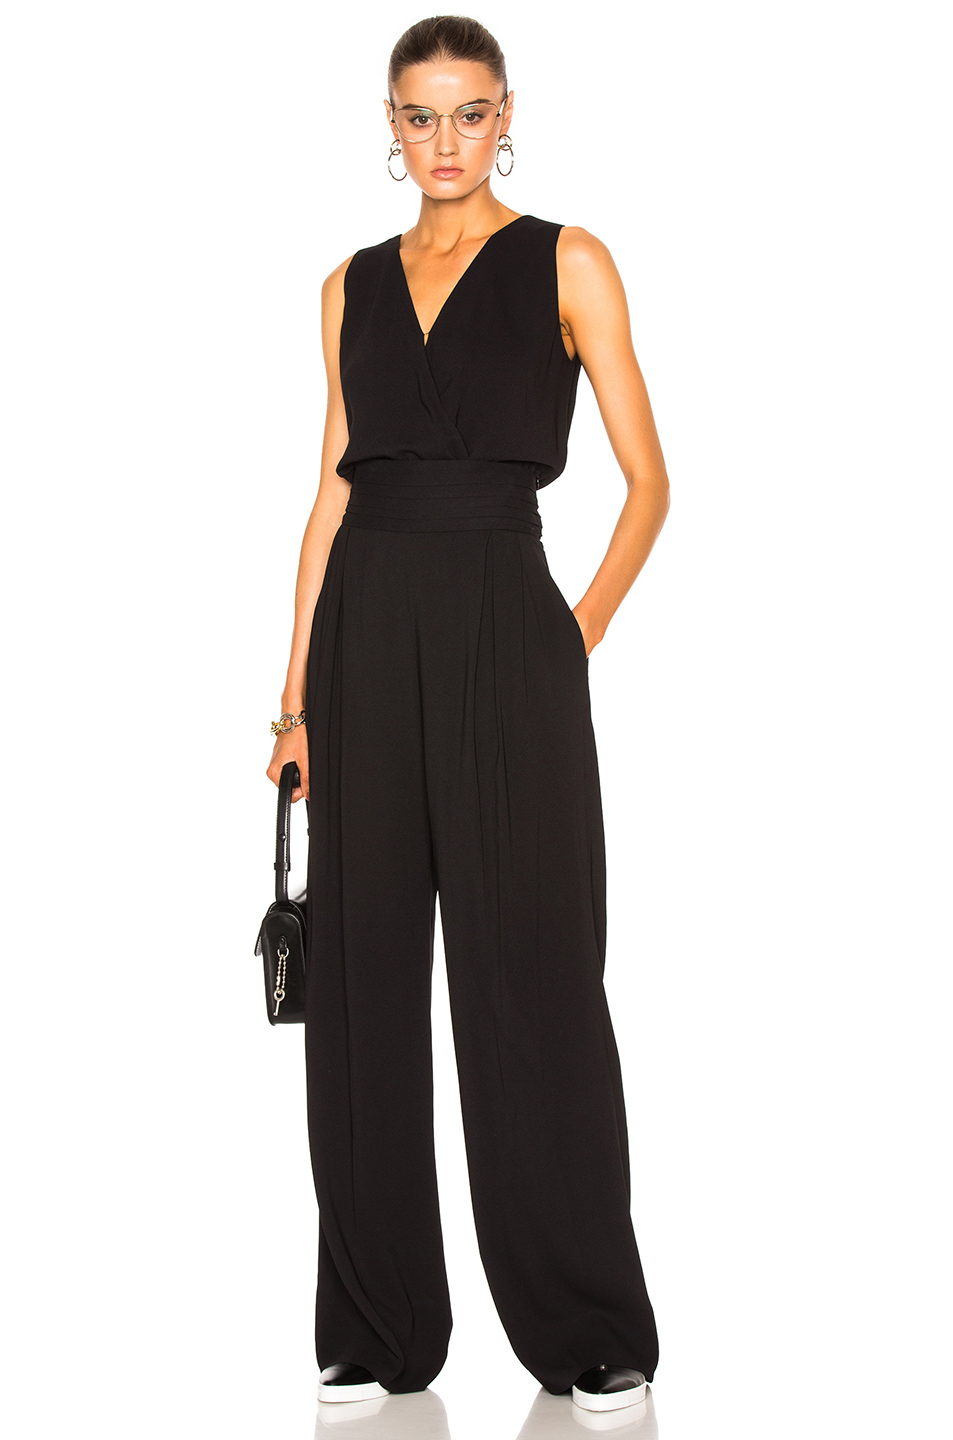 Photo of Maison Margiela Crepe Sable Jumpsuit in Black online sales